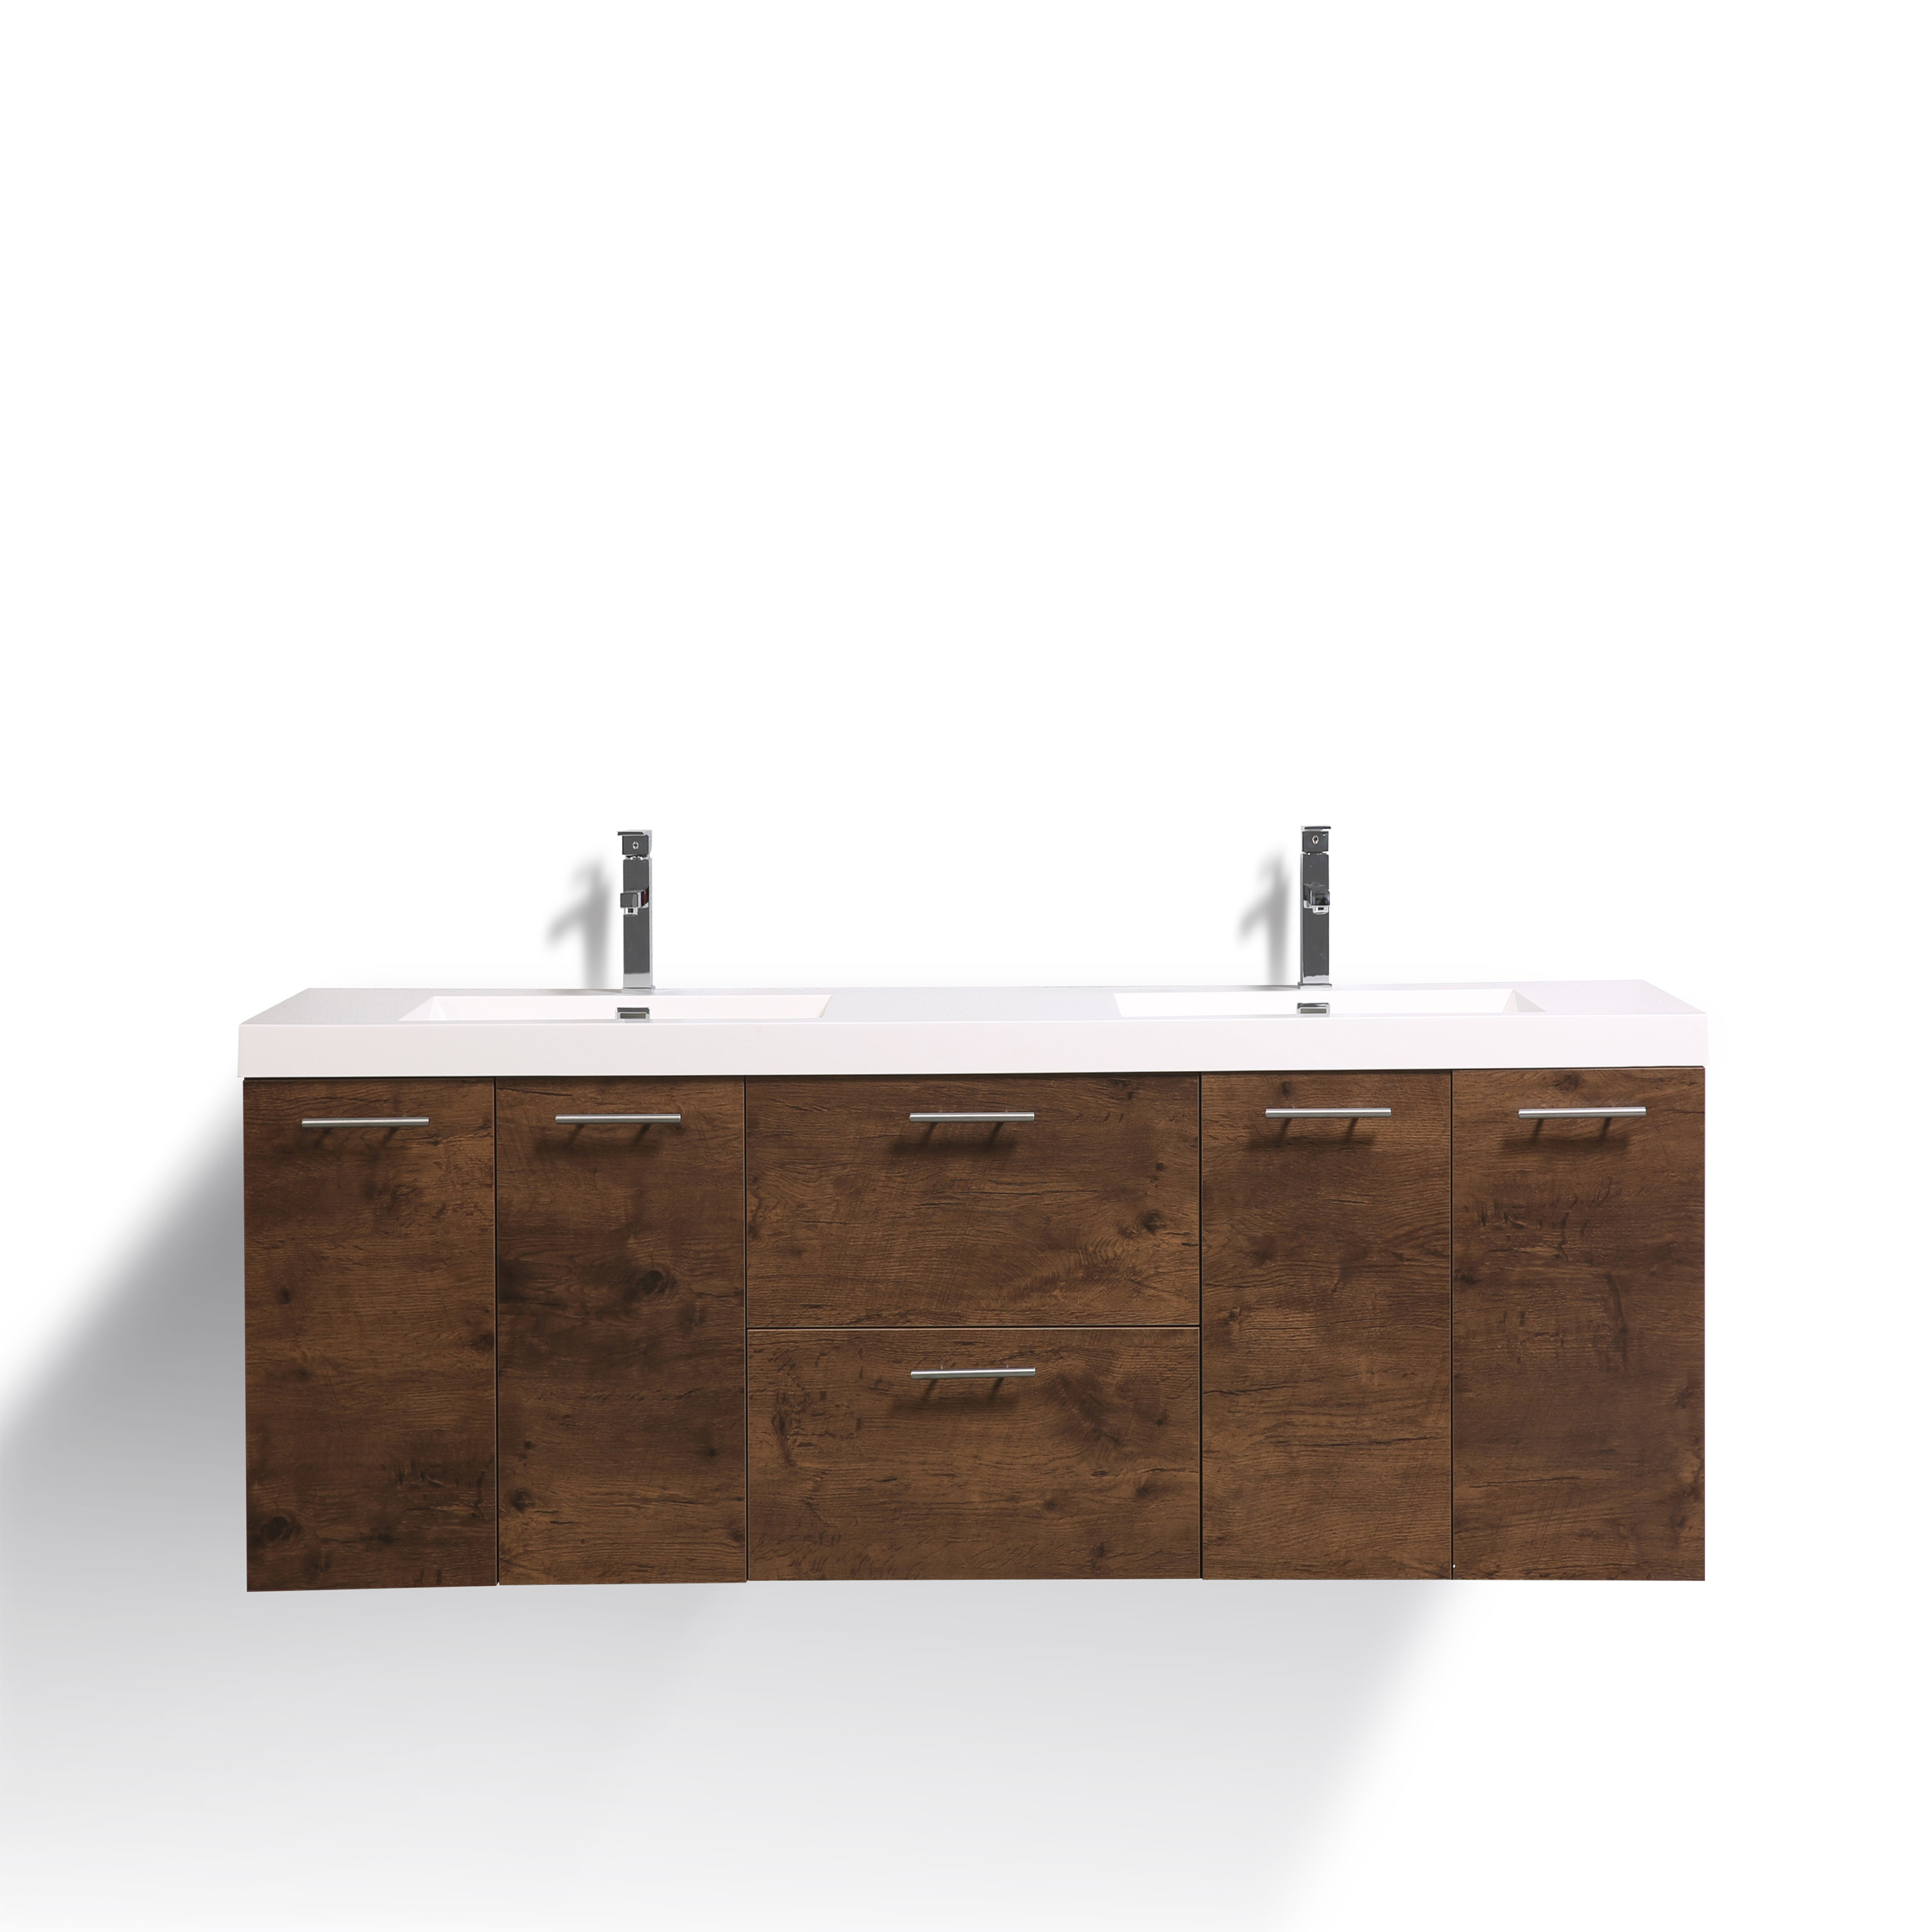 EVVN2100 84RSWD DS A Main - Eviva Luxury 84 inch Rosewood bathroom vanity with integrated acrylic sinks